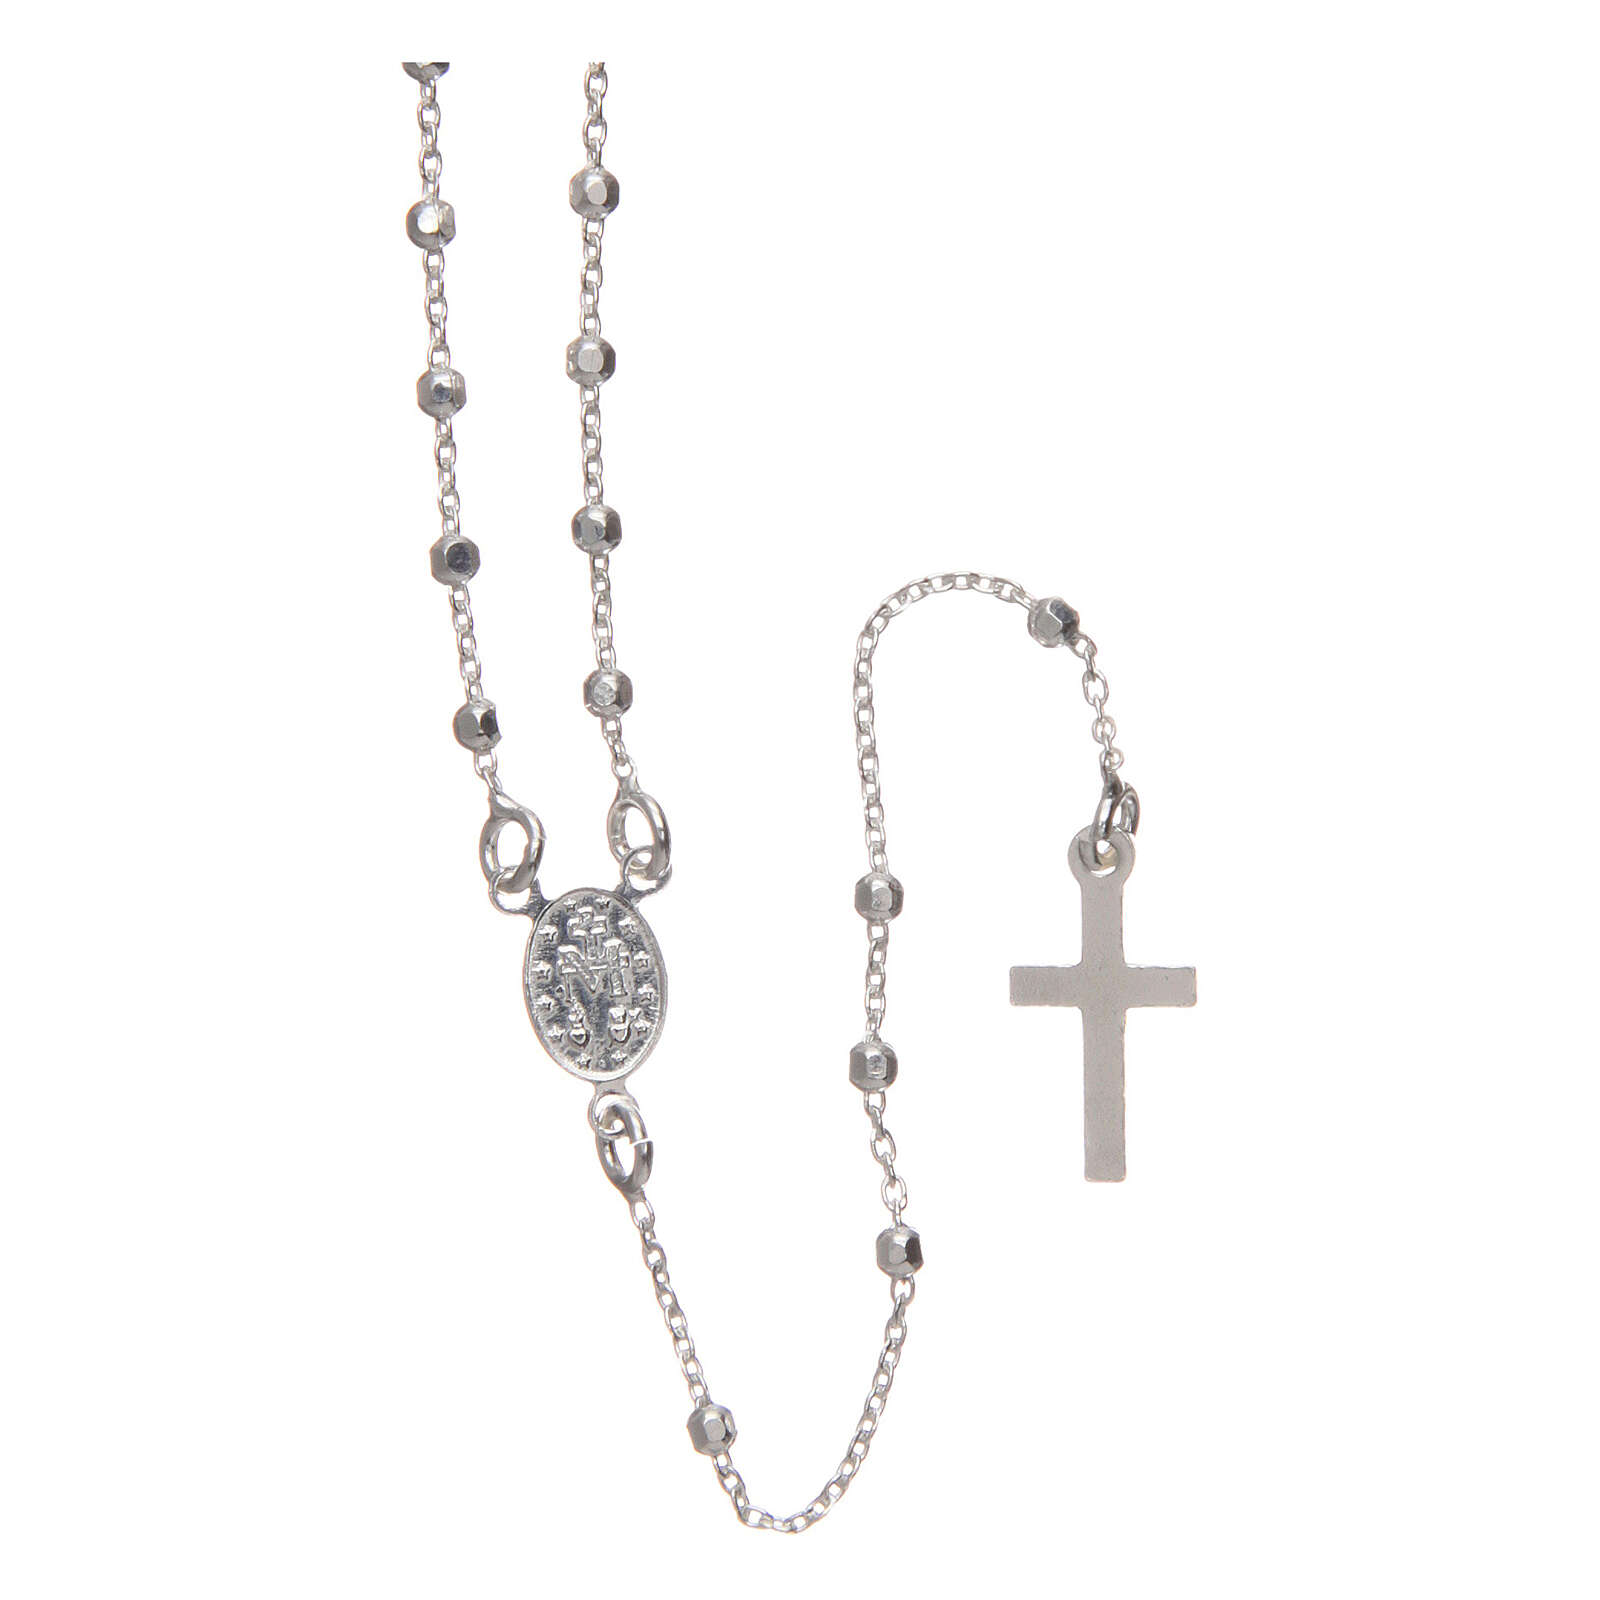 Rosary with round faceted beads 2 mm 925 silver 4